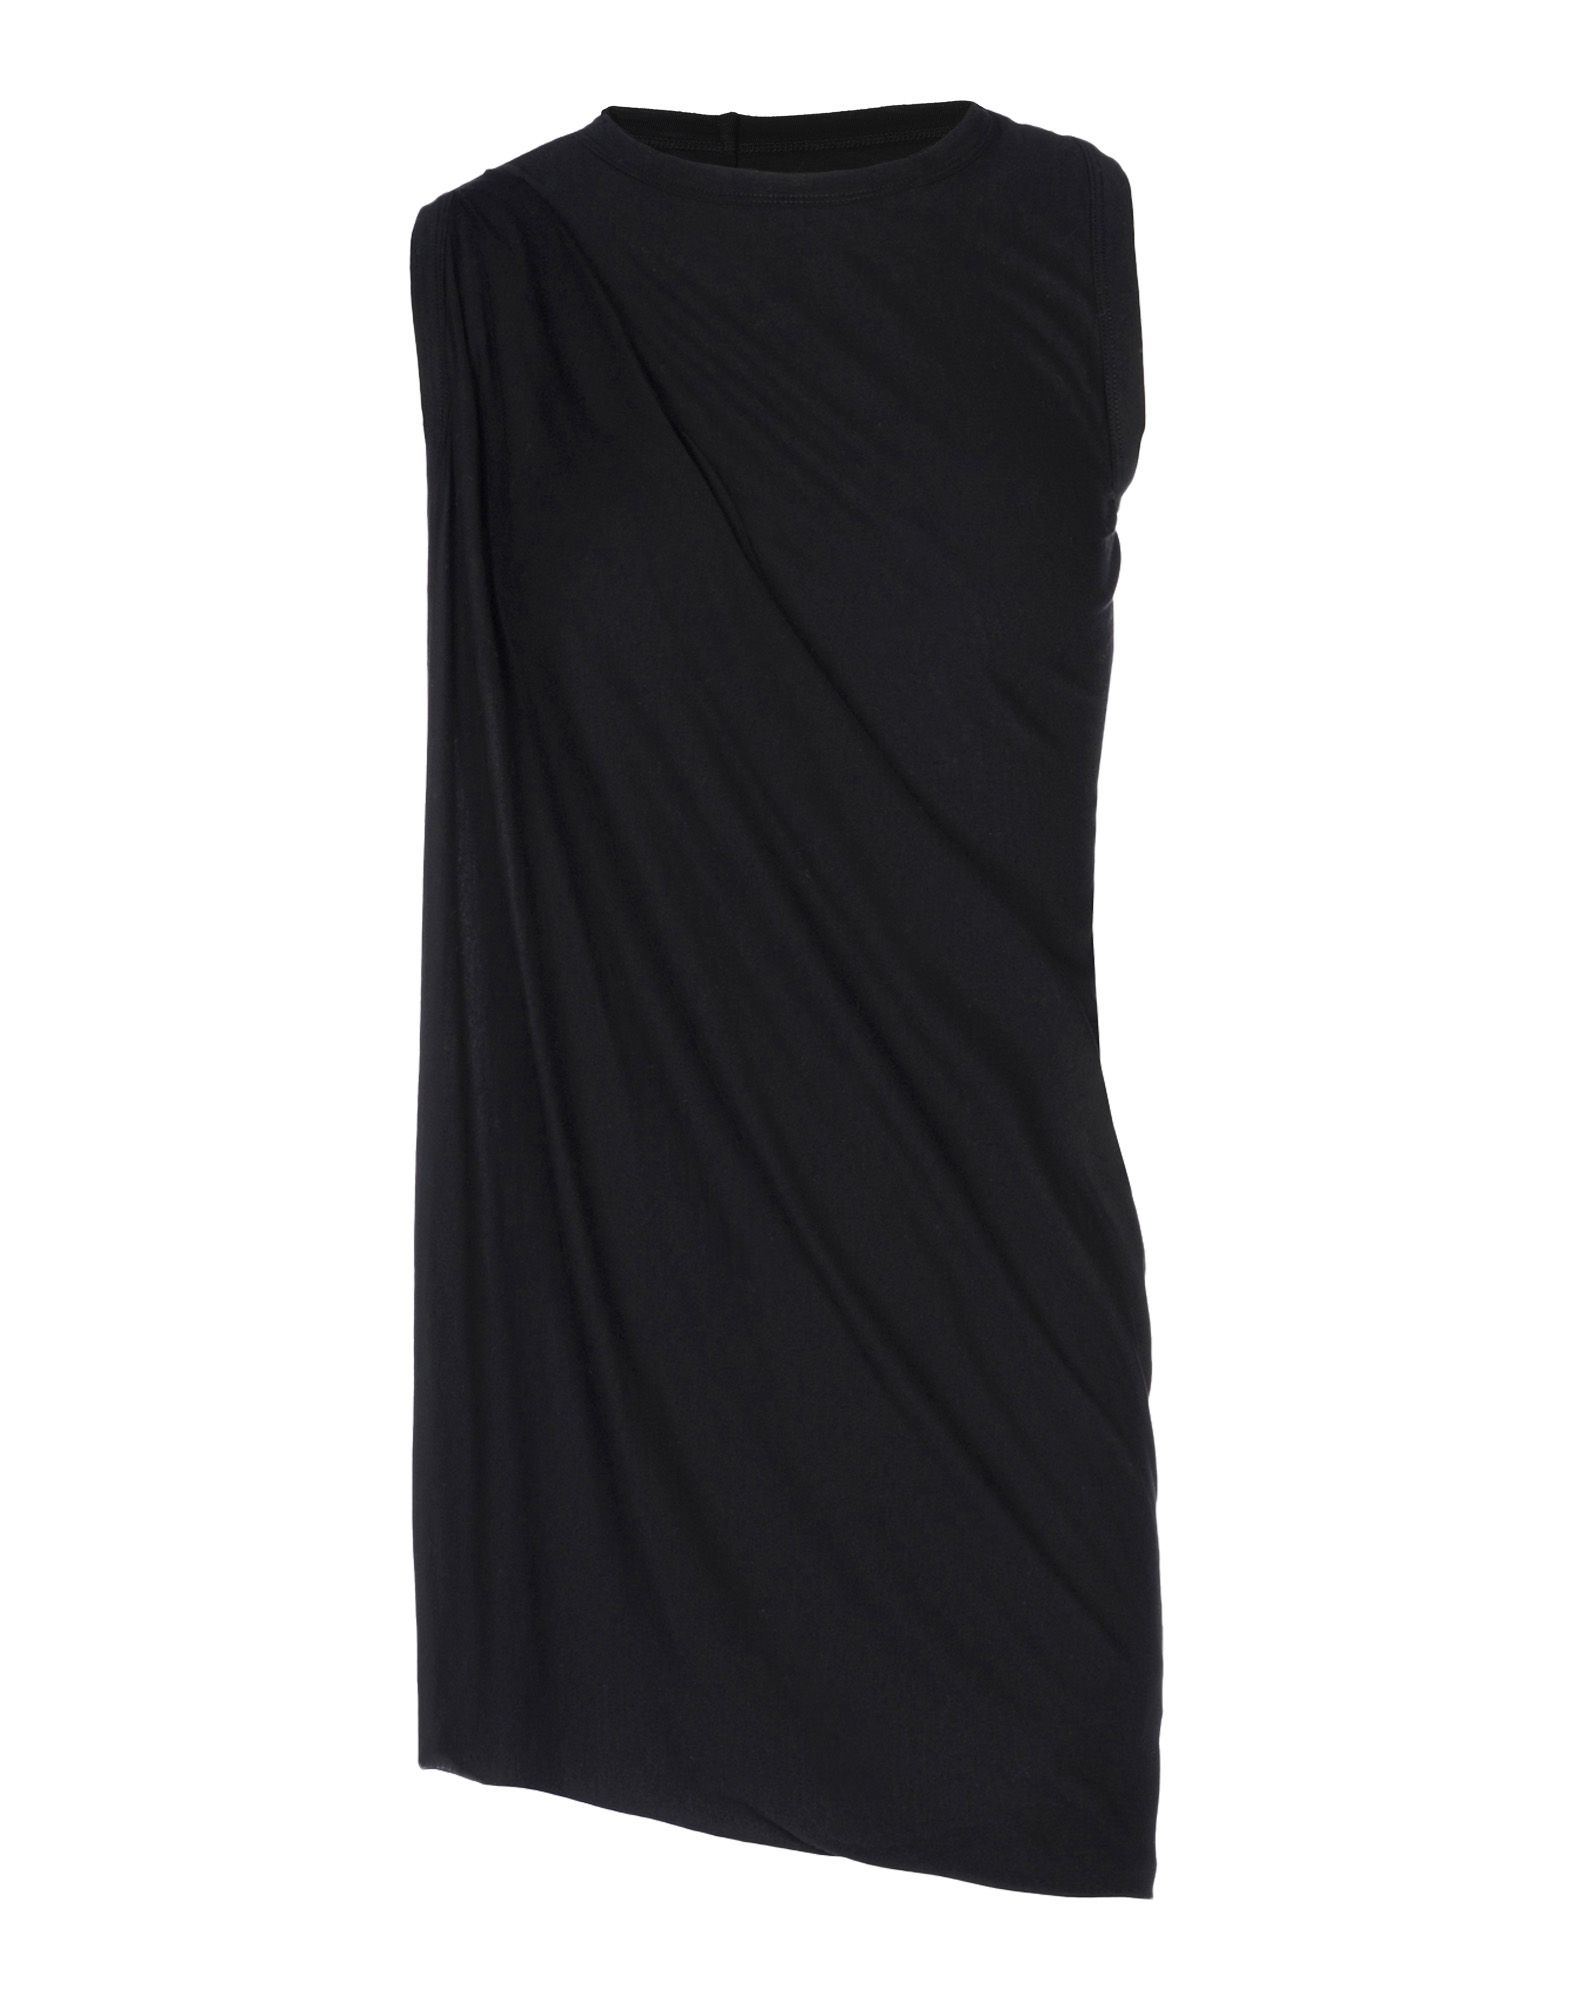 Rick Owens Lilies Sleeveless T Shirt In Black Lyst